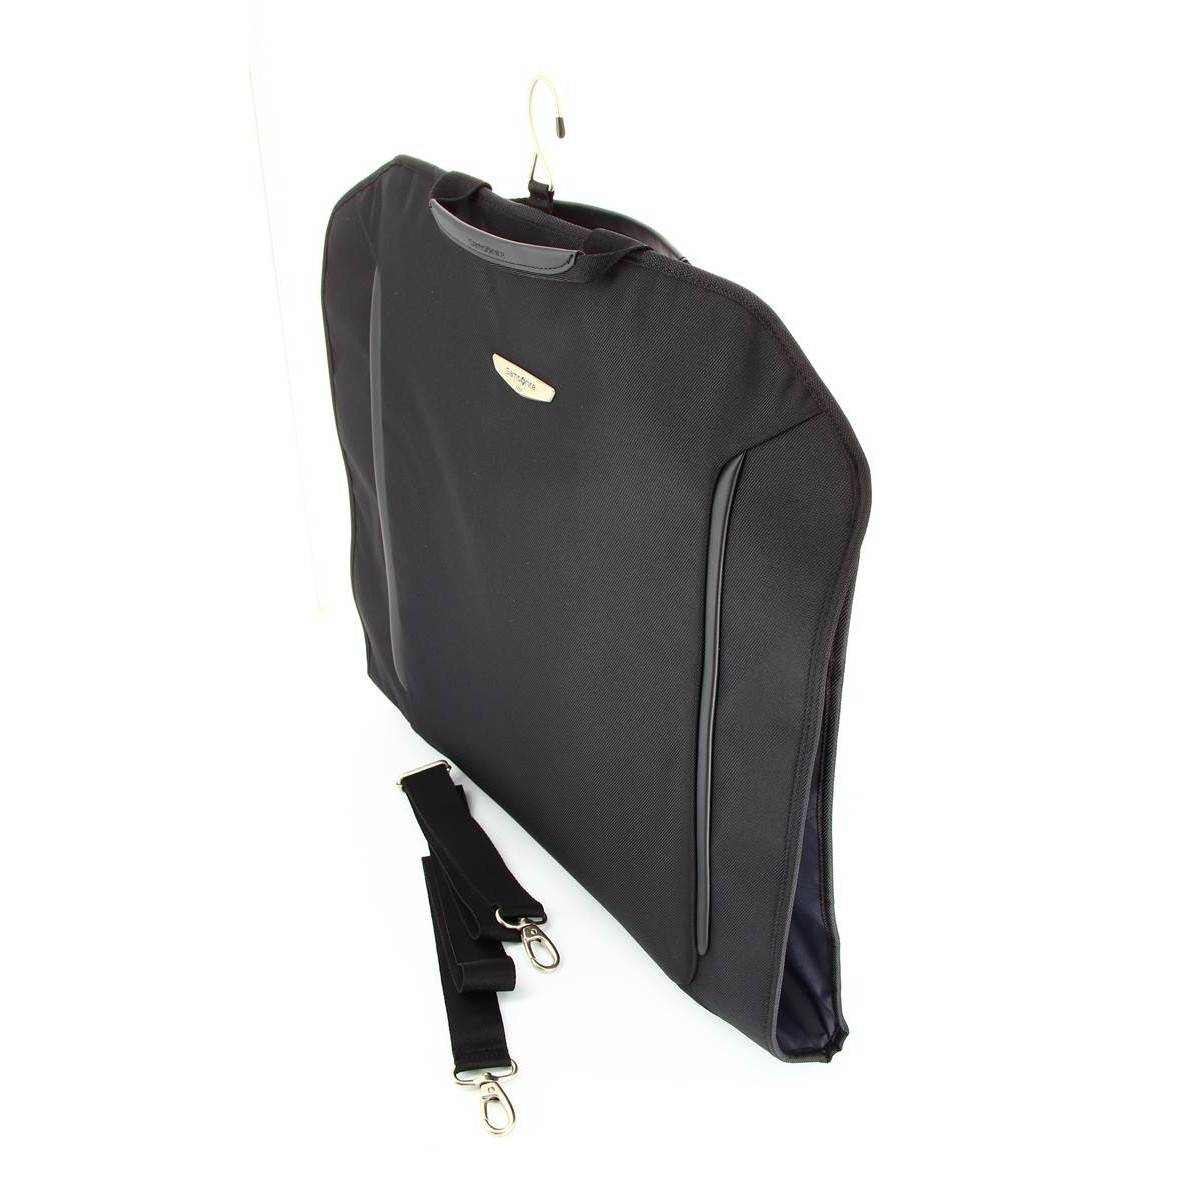 Porte vetement x 39 blade samsonite for Porte habits